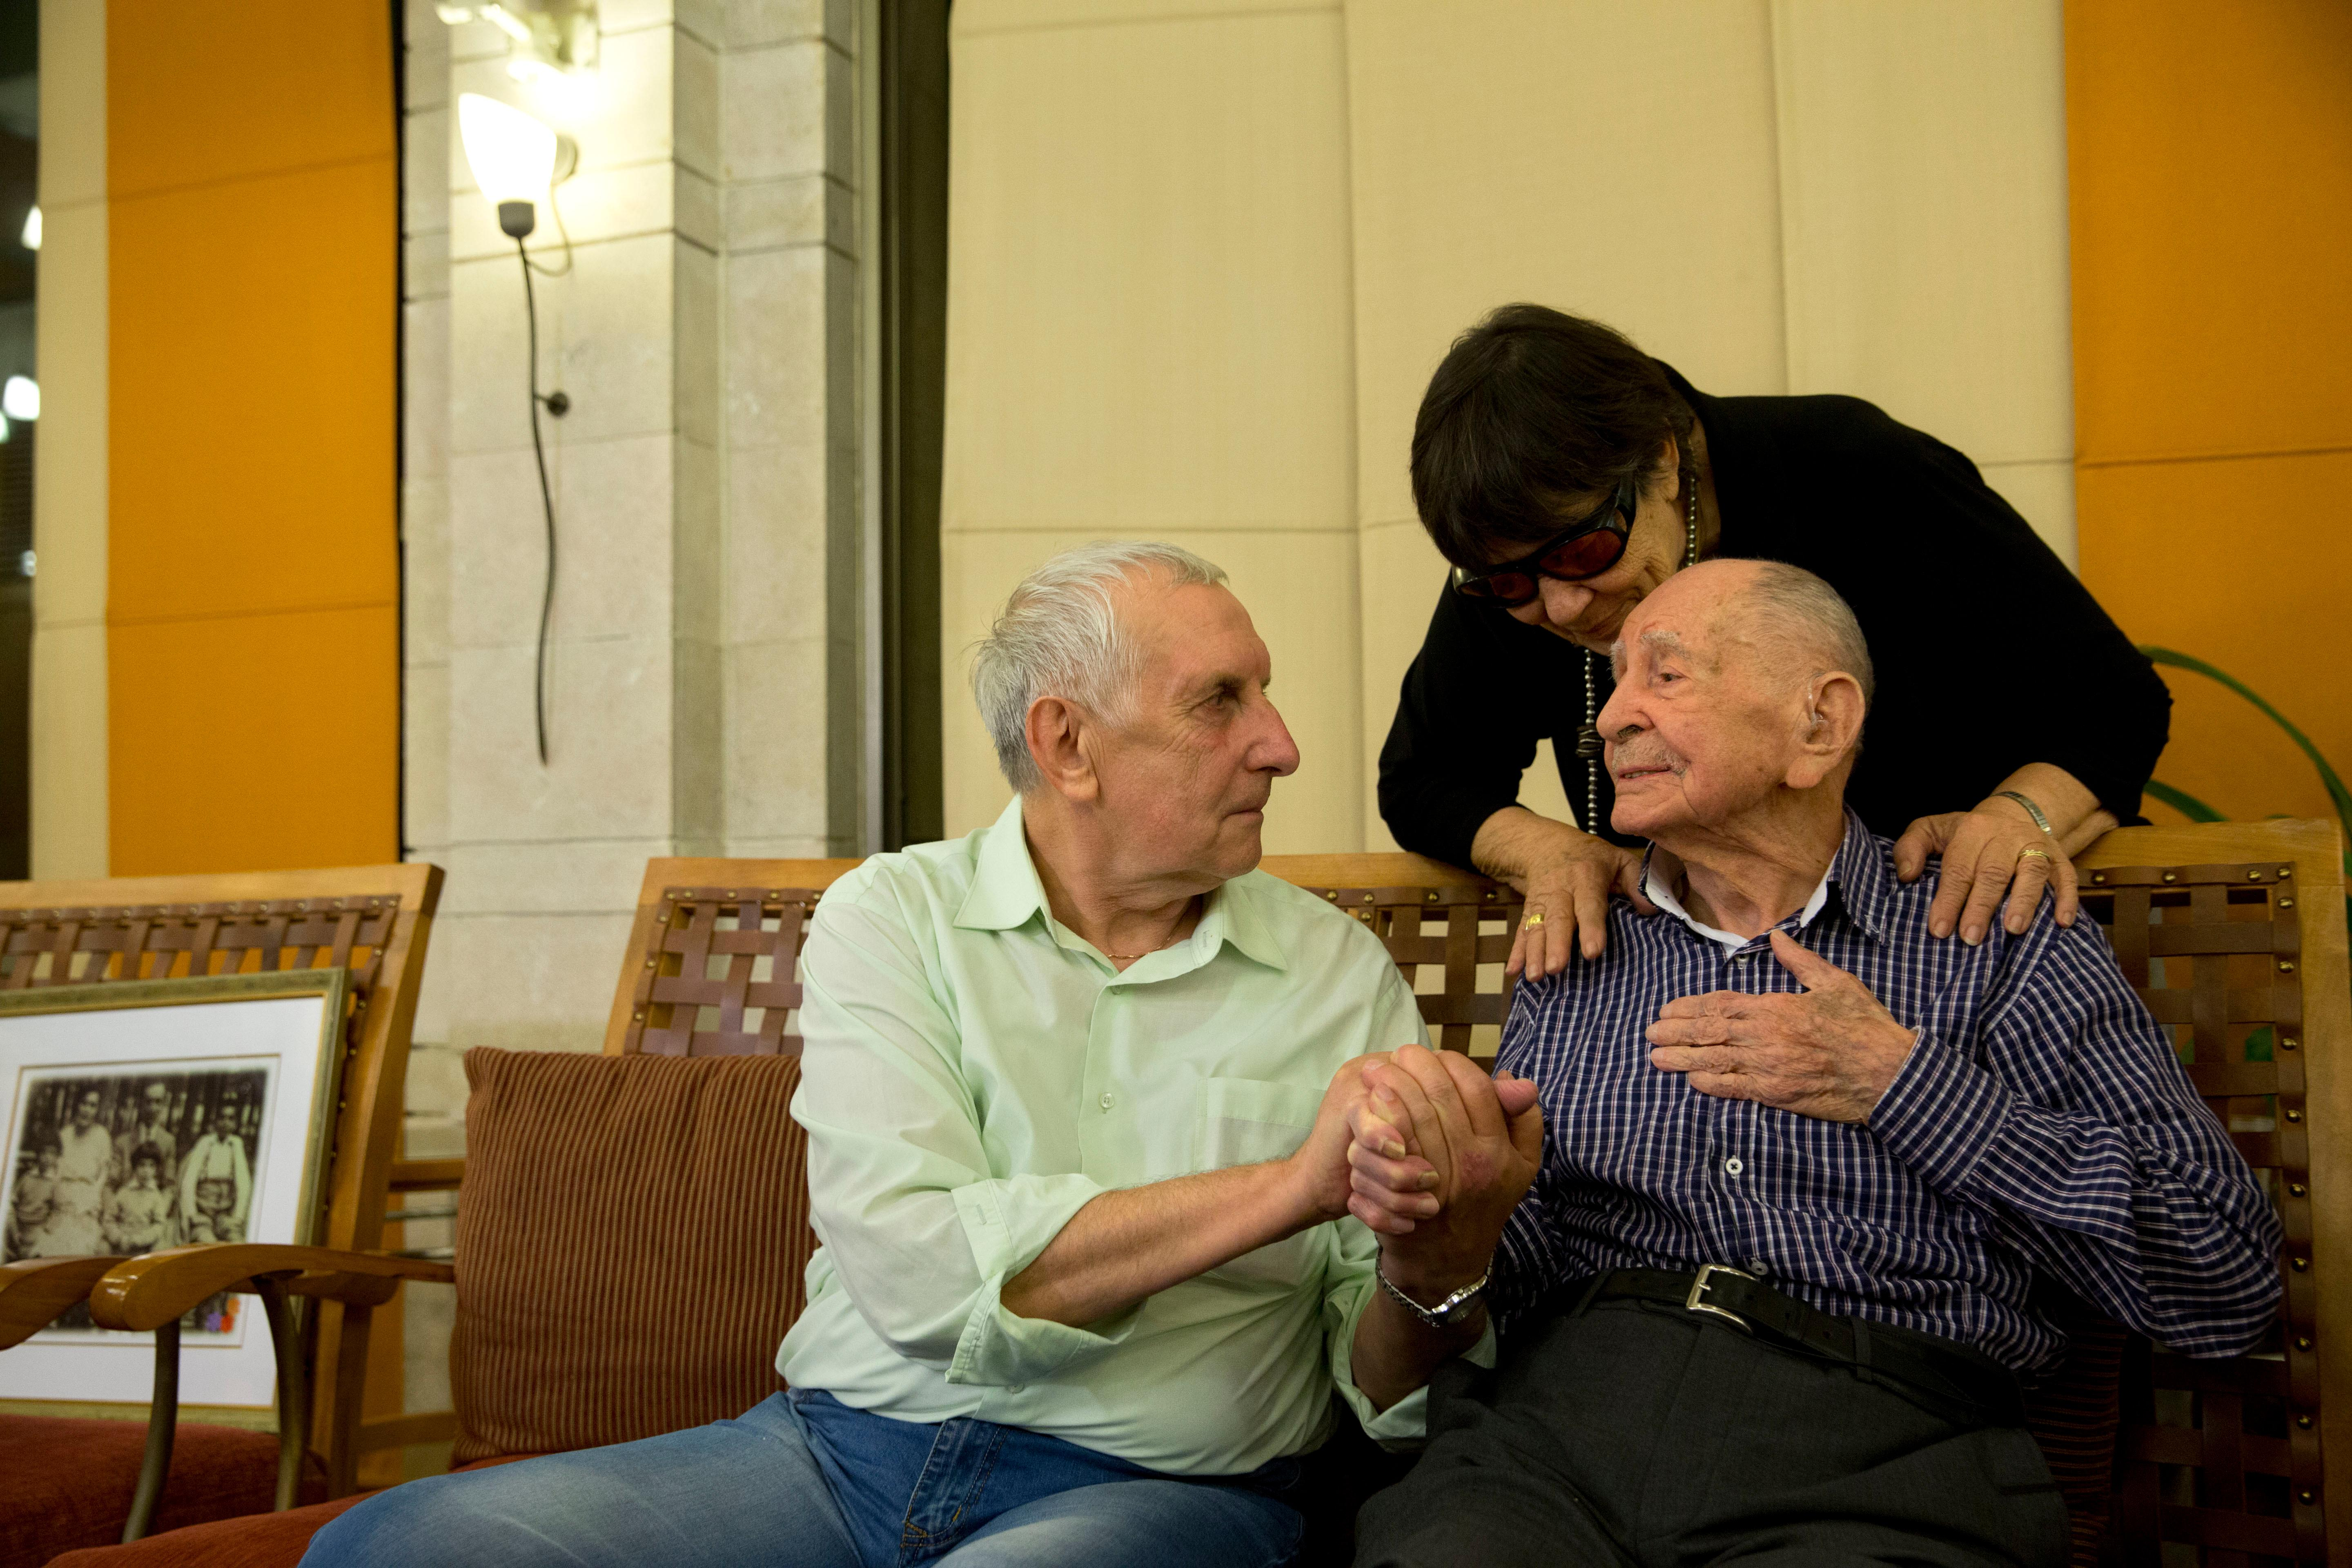 In this Thursday, Nov. 16, 2017 photo, Israeli Holocaust survivor Eliahu Pietruszka, right, speaks with Alexandre Pietruszka as they meet for the first time in the central Israeli city of Kfar Saba. Pietruszka who fled Poland at the beginning of World War II and thought his entire family had perished learned that a younger brother had also survived, and his son, 66-year-old Alexandre, flew from Russia to see him. (AP Photo/Sebastian Scheiner)